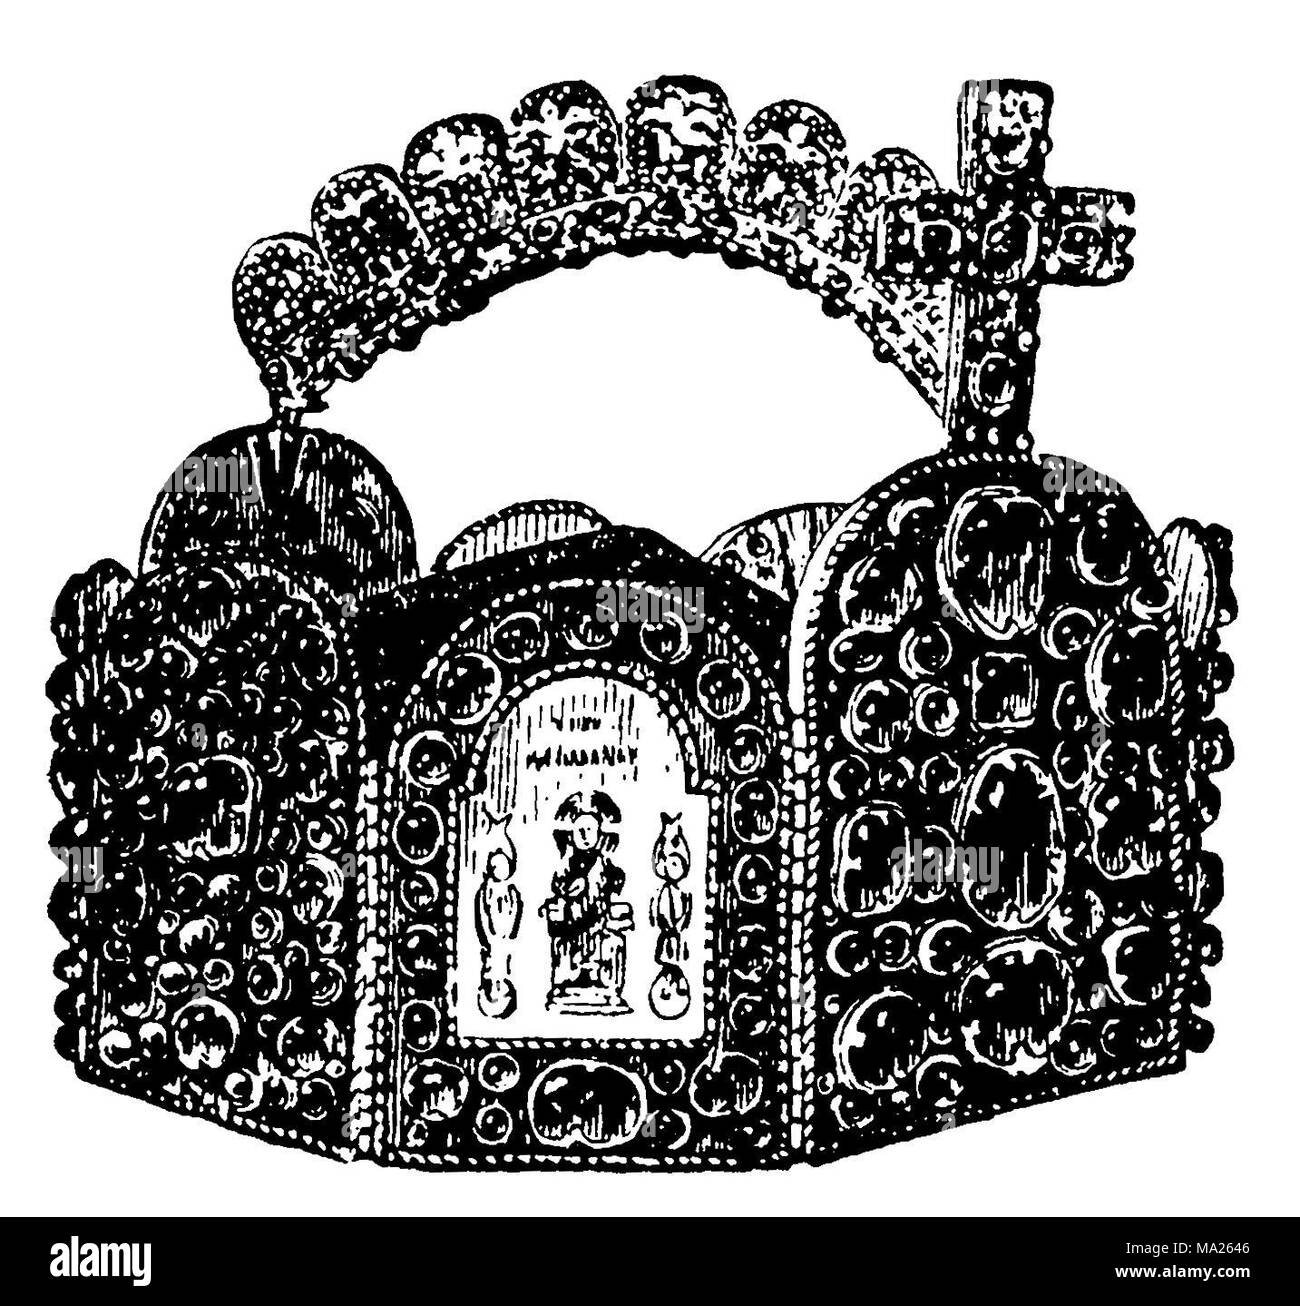 Imperial crown, crown of kings and emperors of the Holy Roman Empire since the High Middle Ages, 1891 - Stock Image